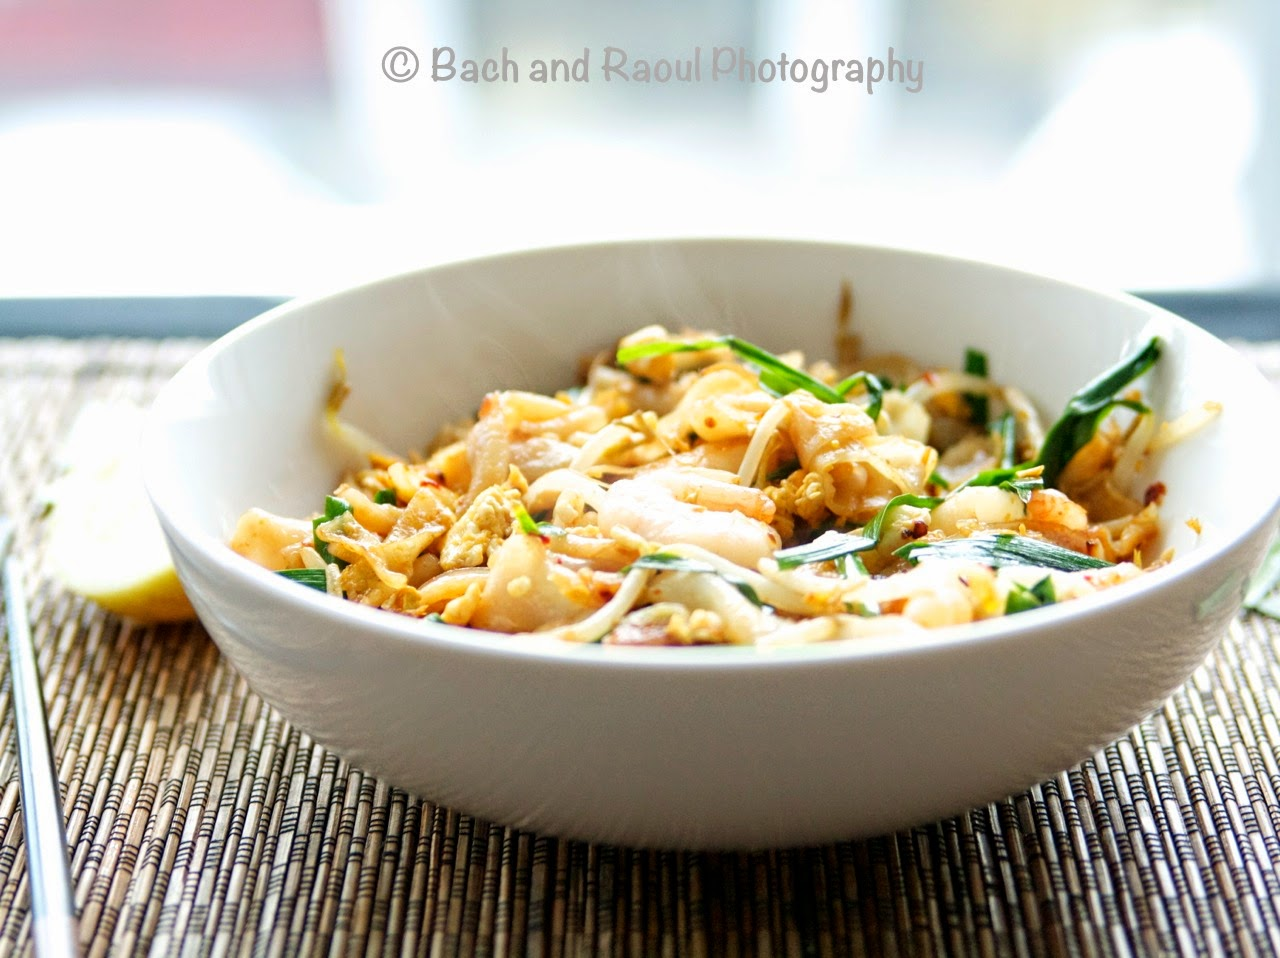 Char Kway Teow - Malayasian Stir Fried Rice Noodles with Shrimp and Garlic Chives